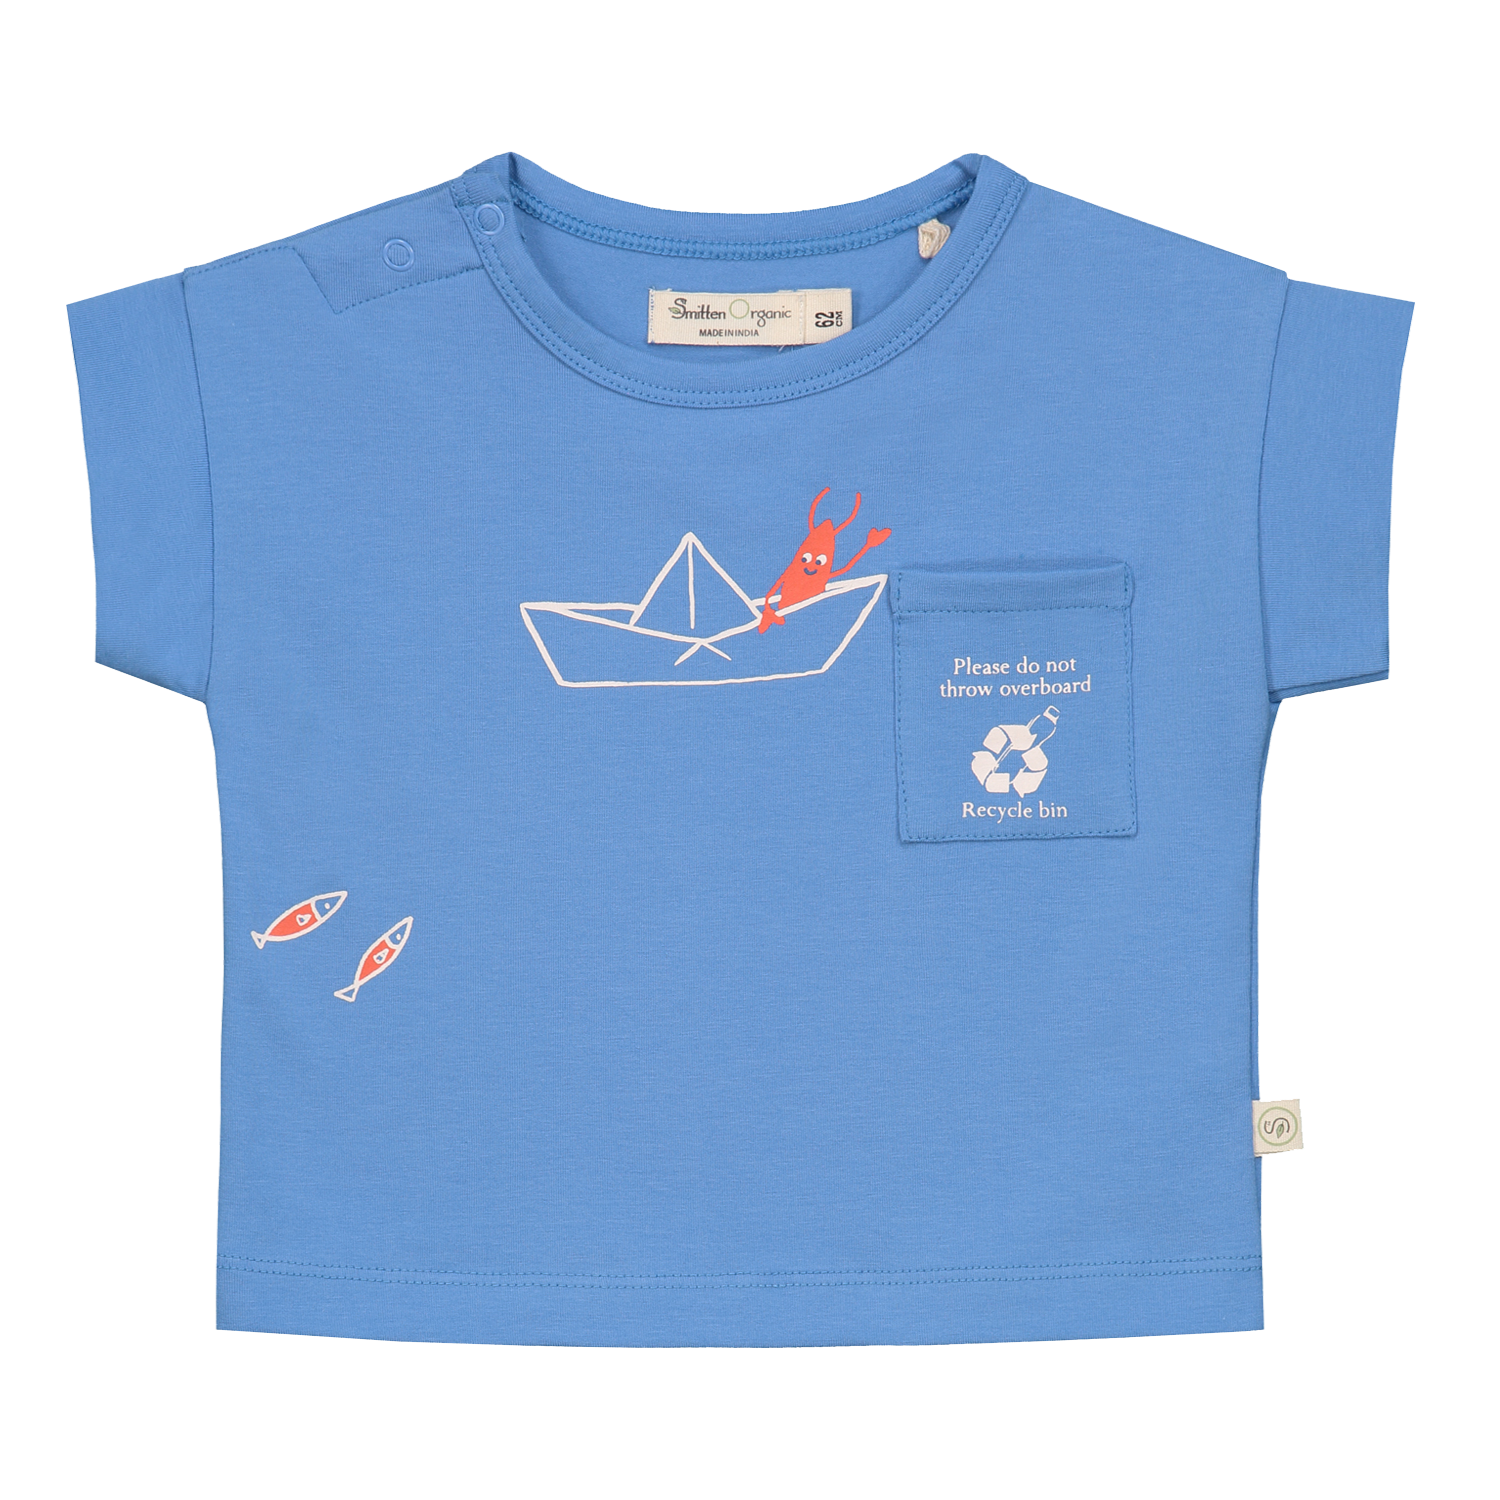 Lobster Inspiring Plastic Recycle - Short Sleeve T-Shirt